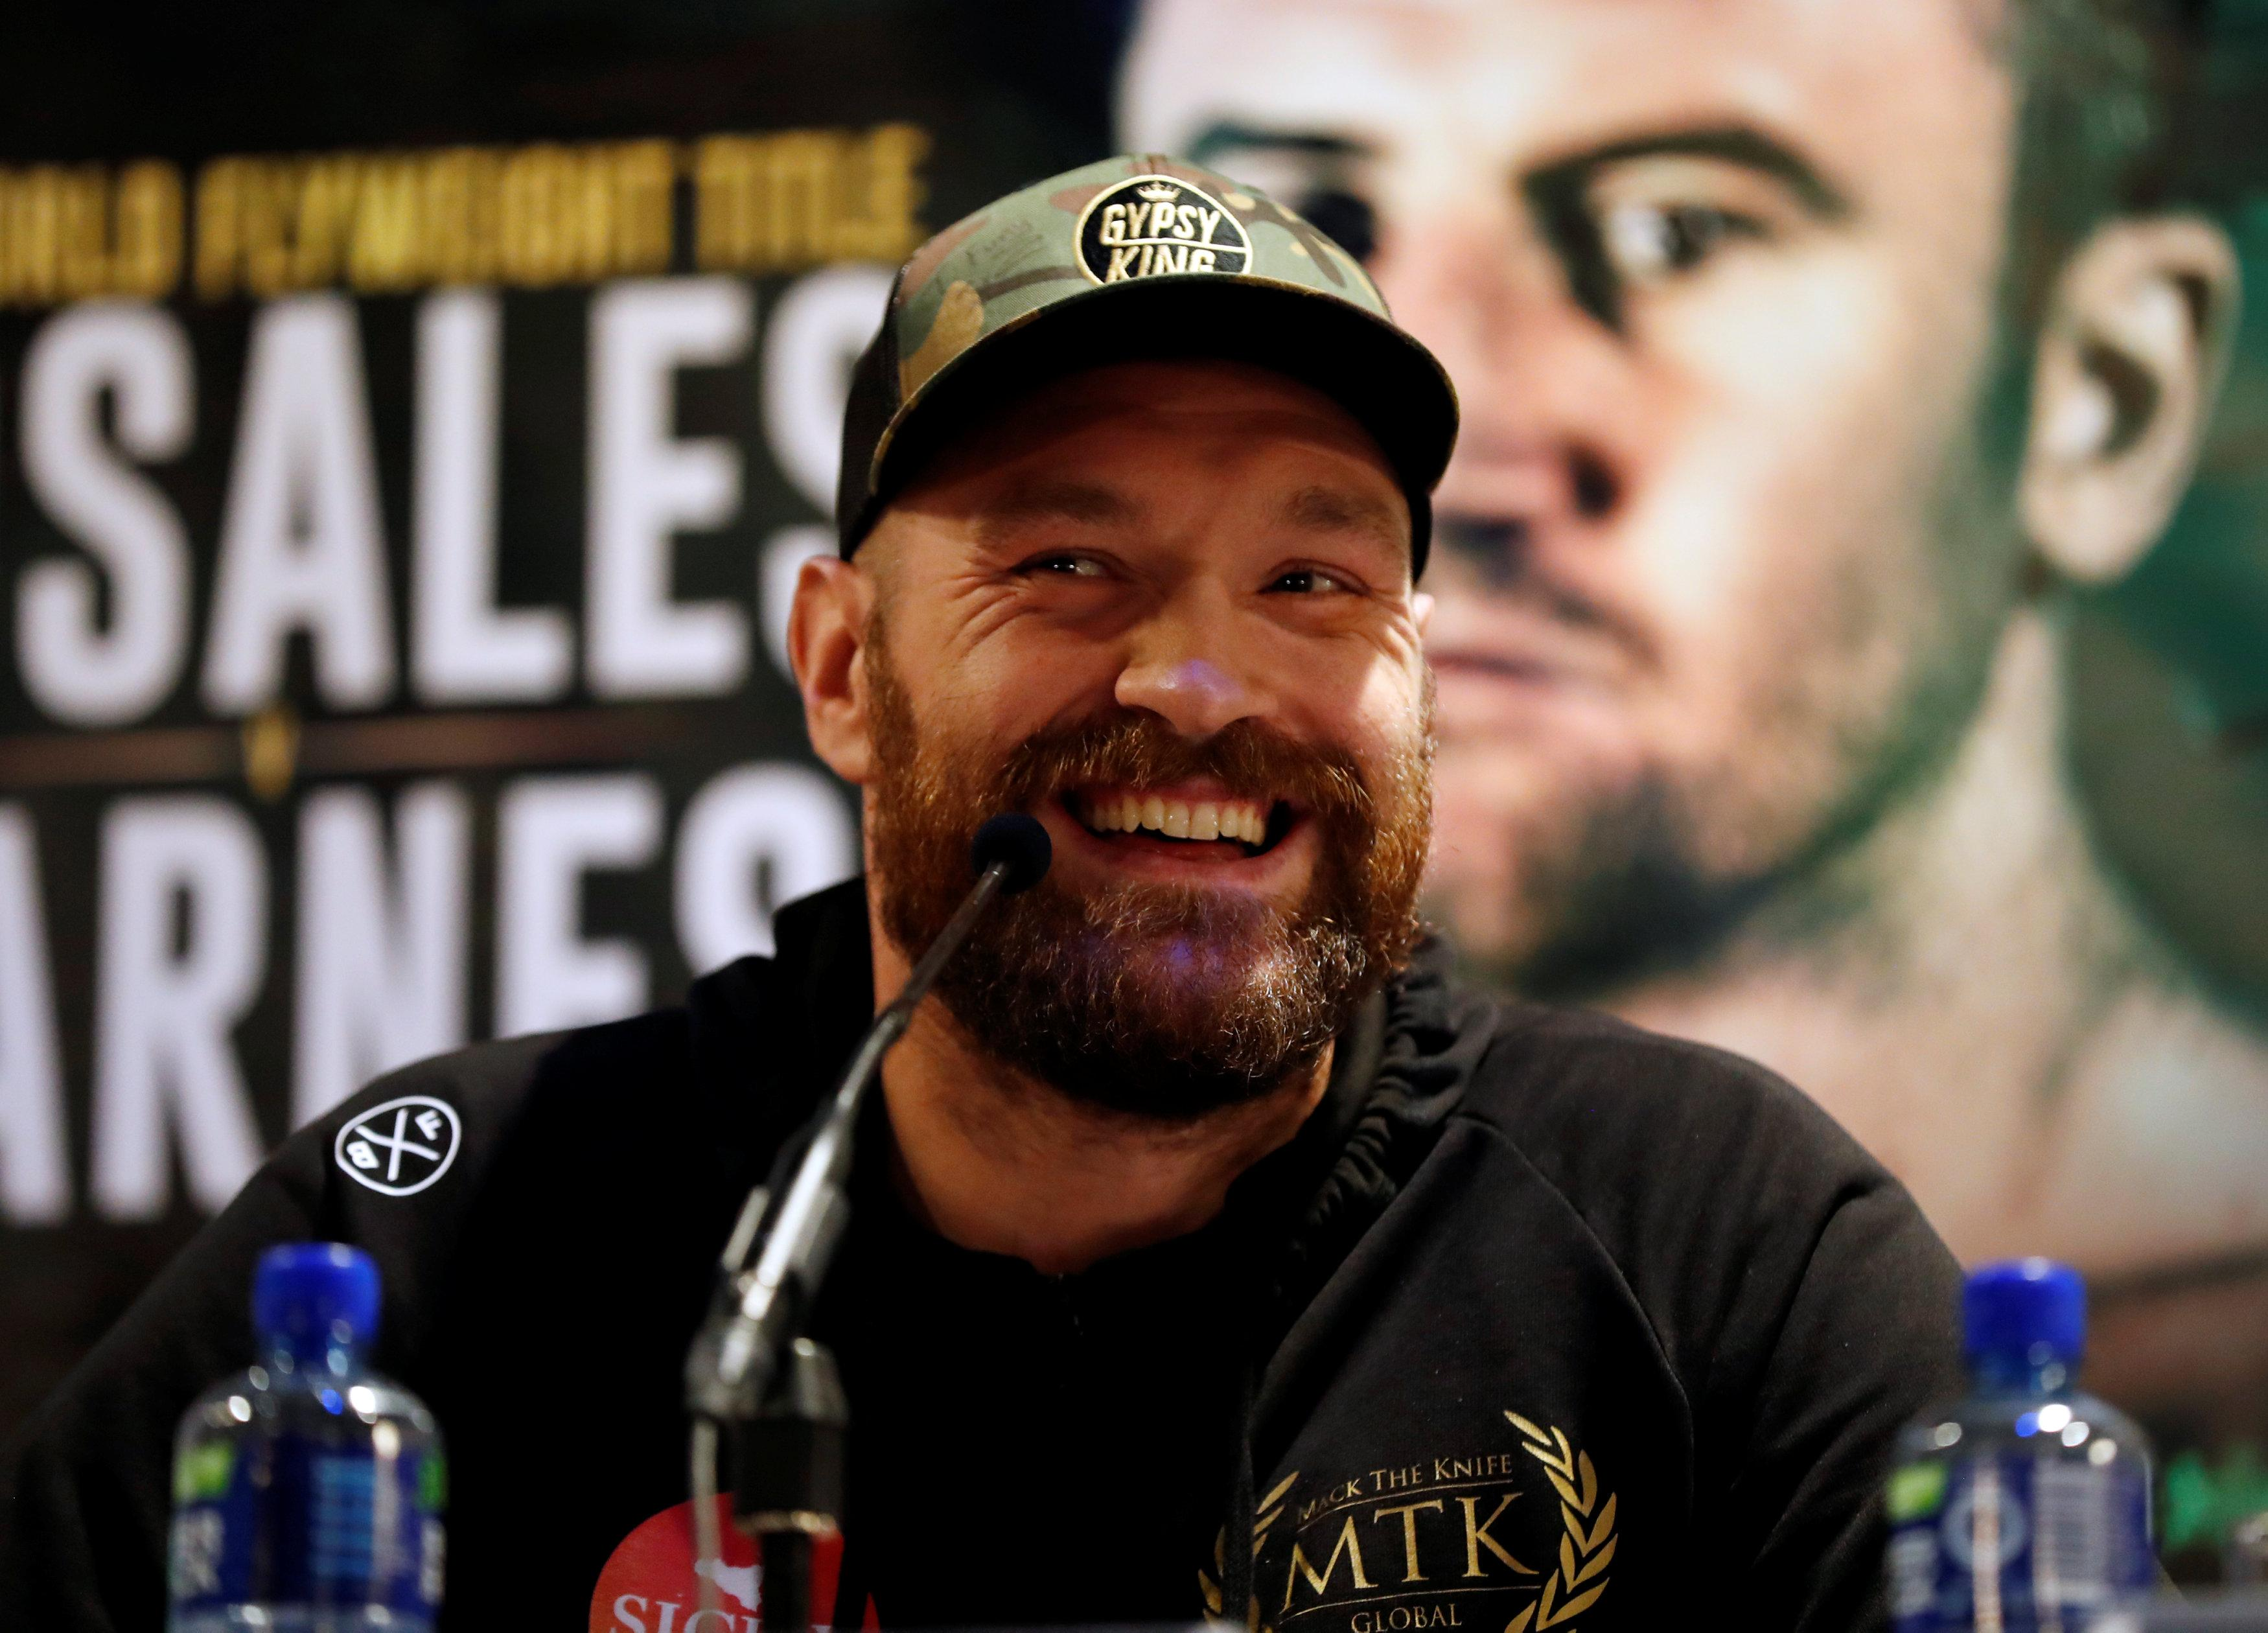 Tyson Fury seemed in fine spirits on Tuesday but admitted his future remains a mystery